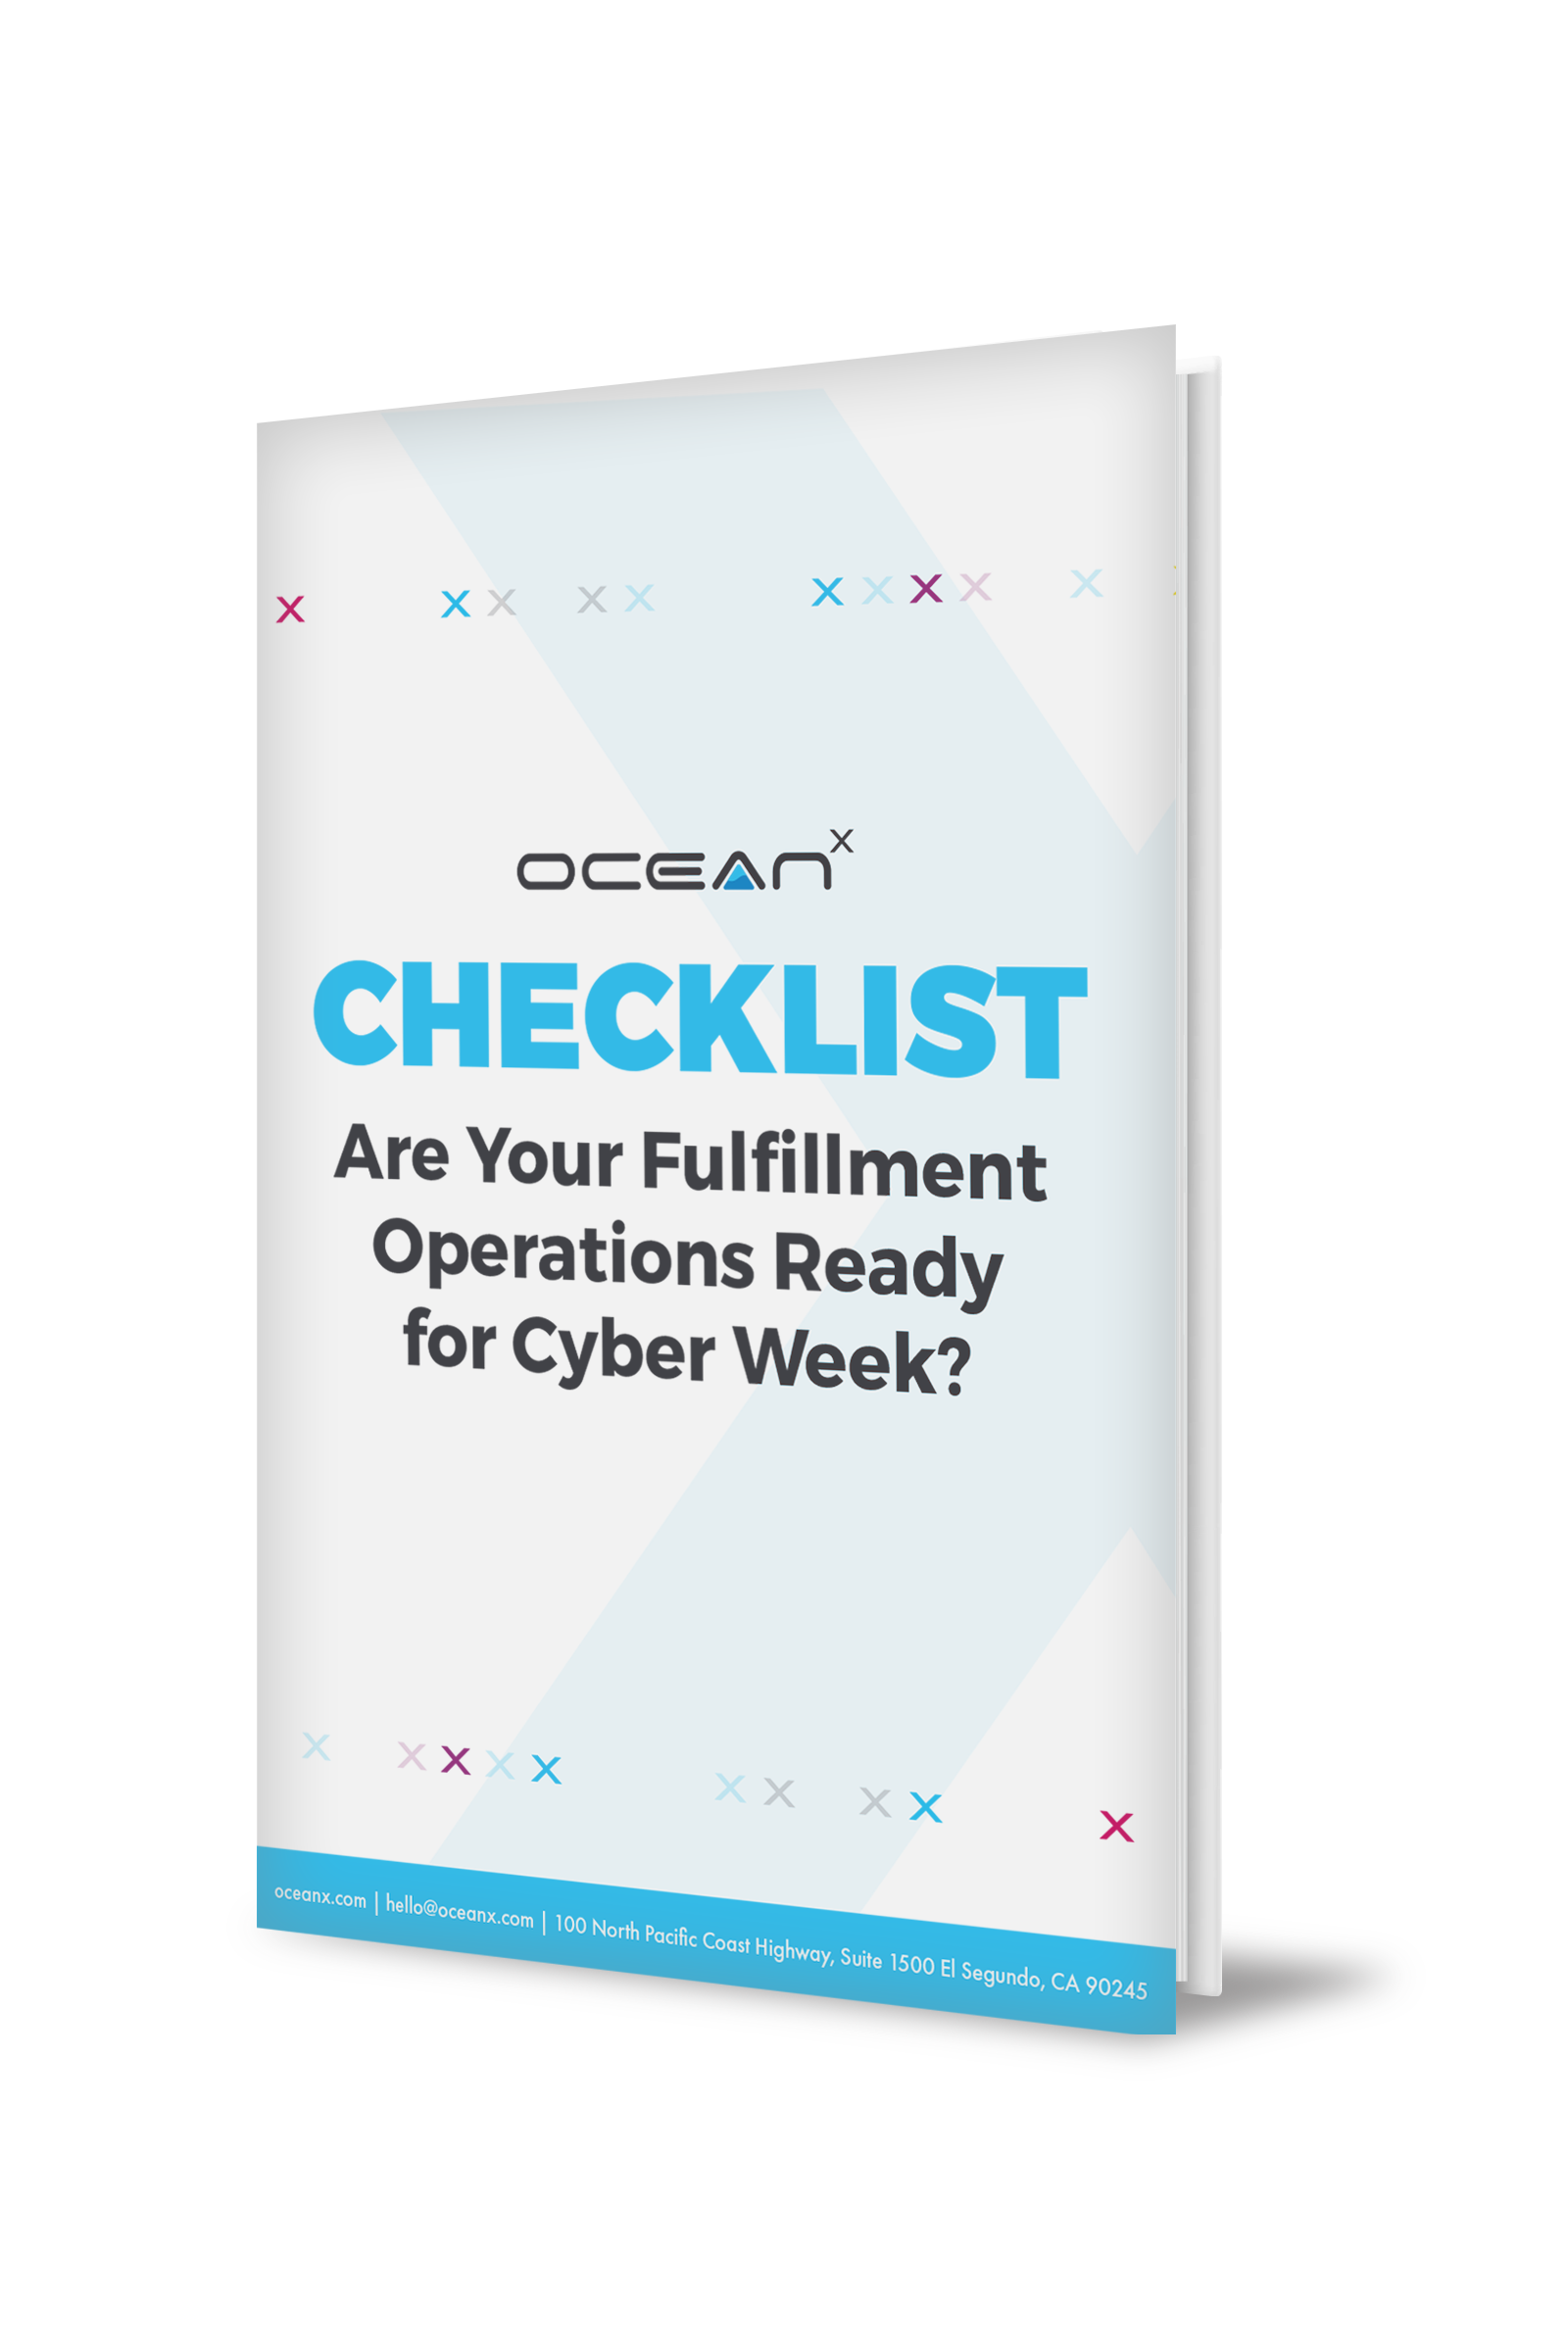 1138642_Case Study _ Resource _ PDF Cover Image (Are Your Fulfillment Operations Ready for Cyber Week_ A Checklist)_02_V2_081021